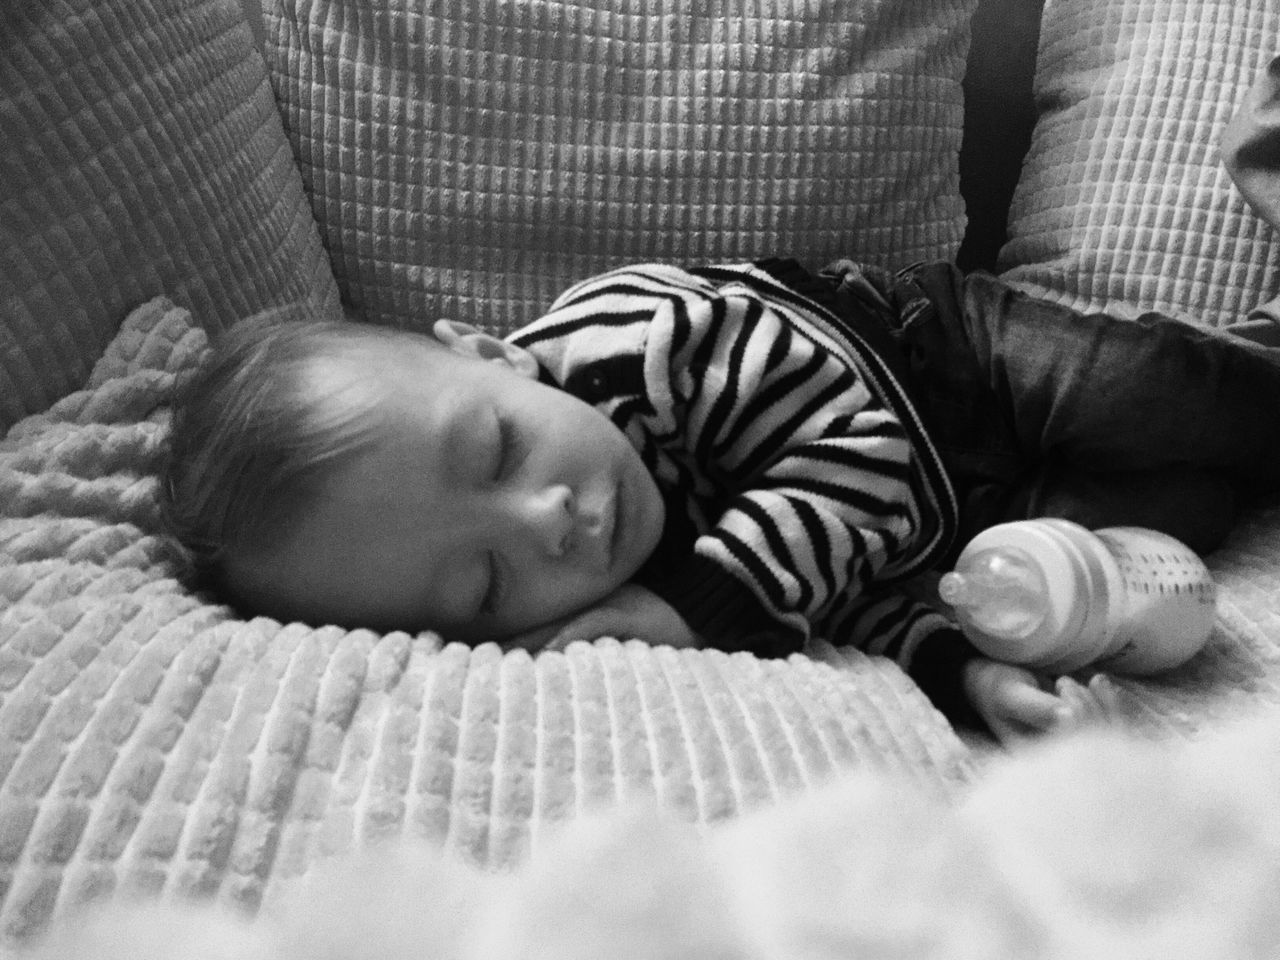 Baby Real People One Person Lying Down Childhood Babyhood Relaxation Indoors  Lifestyles Sleeping Baby Leisure Activity Close-up Day Mammal People